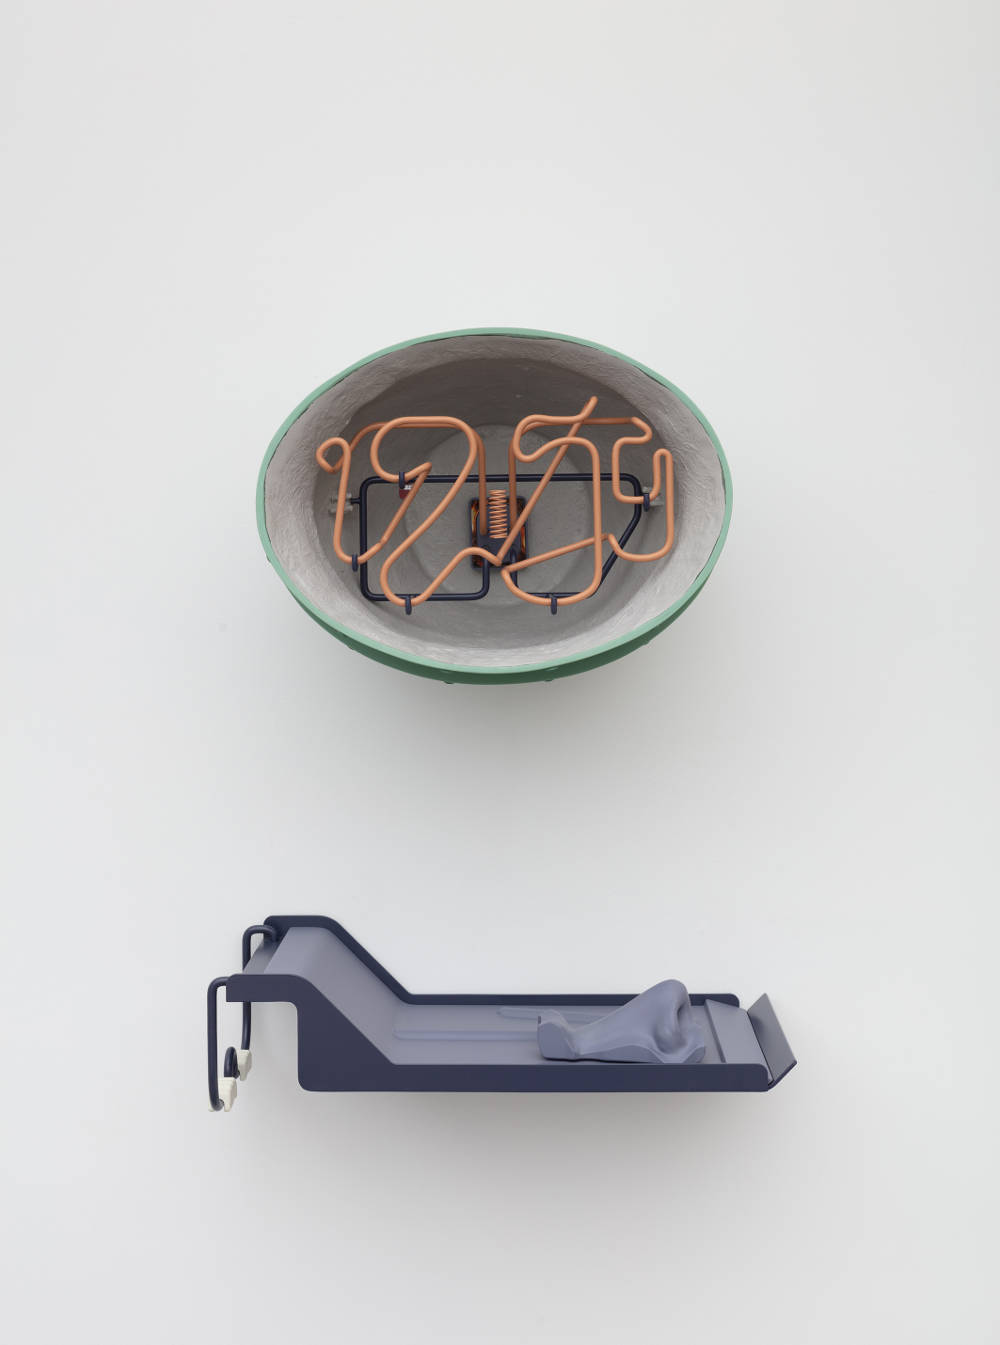 Magali Reus, Empty Every Night (12:59 Bell and Hammer), 2019. Fiberglass, polyester resin, pigments, powder coated steel rod and aluminum, sprayed UV printed resin, sprayed plywood, airbrushed resin, C-type print, acrylic; 2 parts 41 x 53 x 40 cm / 16 1/8 x 20 7/8 x 15 3/4 in 17 x 63 x 32 cm / 6 3/4 x 24 3/4 x 12 5/8 in © Magali Reus. Courtesy the artist and Galerie Eva Presenhuber, Zurich / New York. Photo: Lewis Ronald